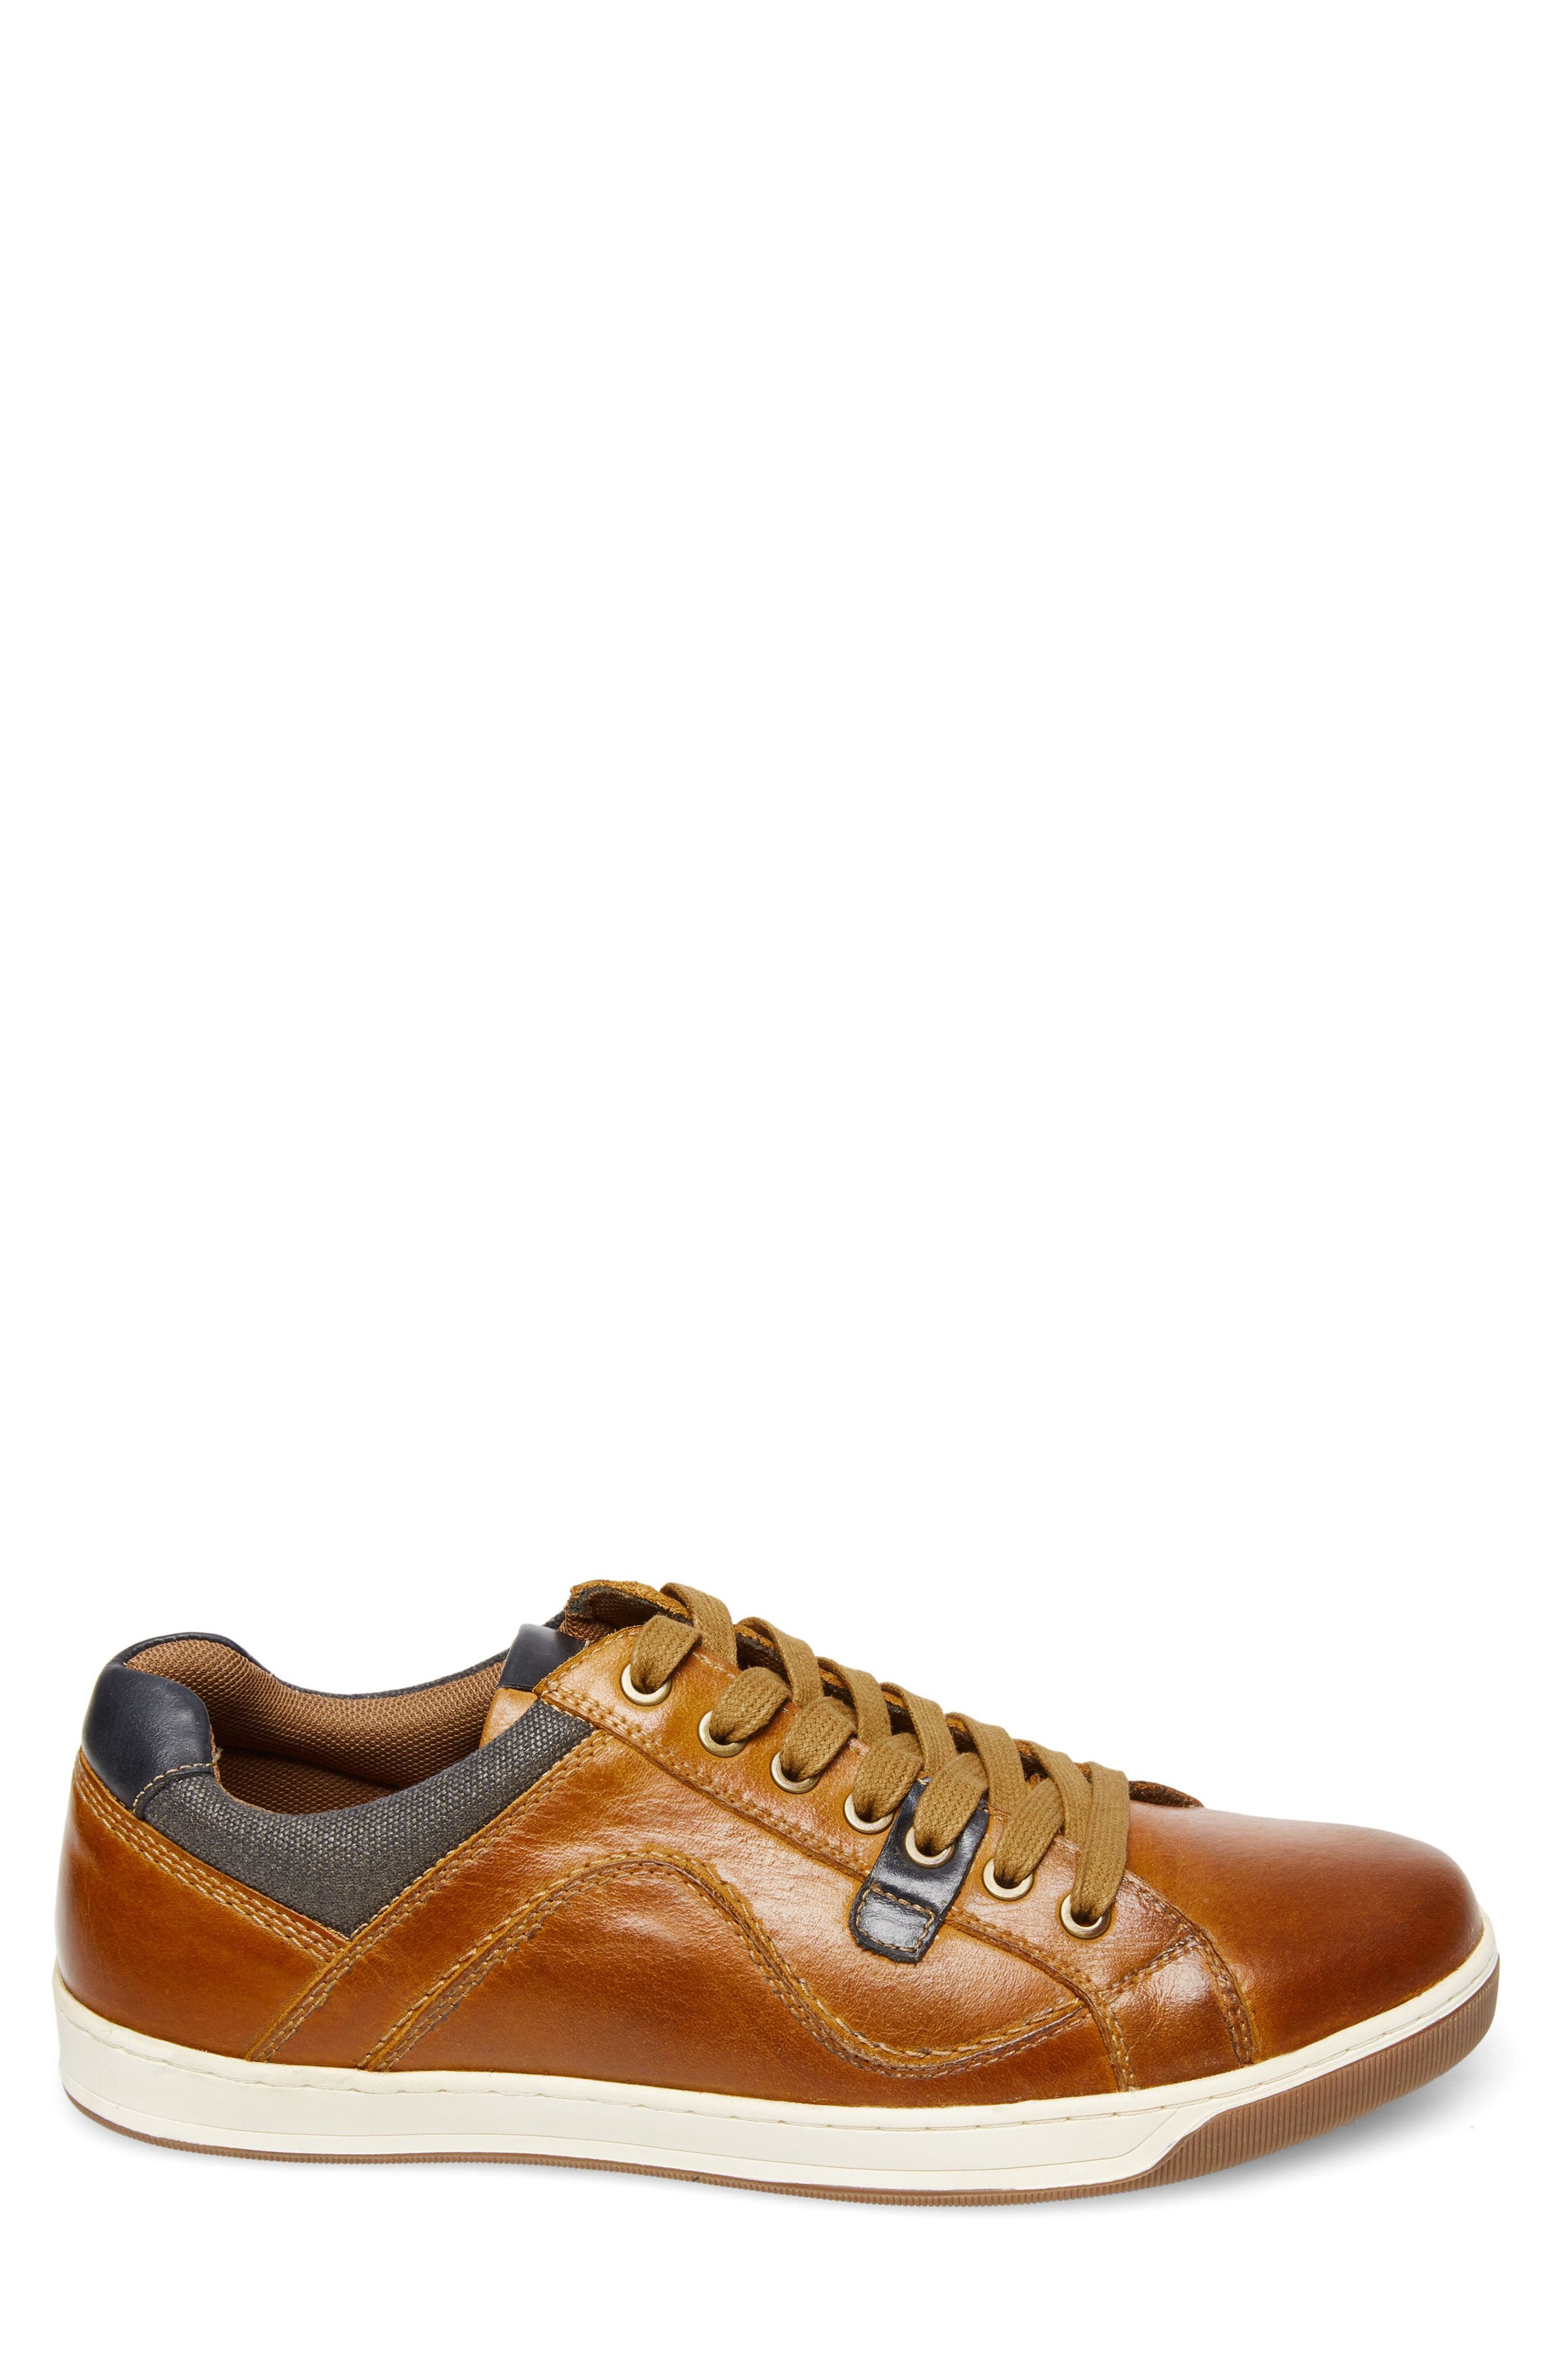 Chater Low Top Sneaker,                             Alternate thumbnail 6, color,